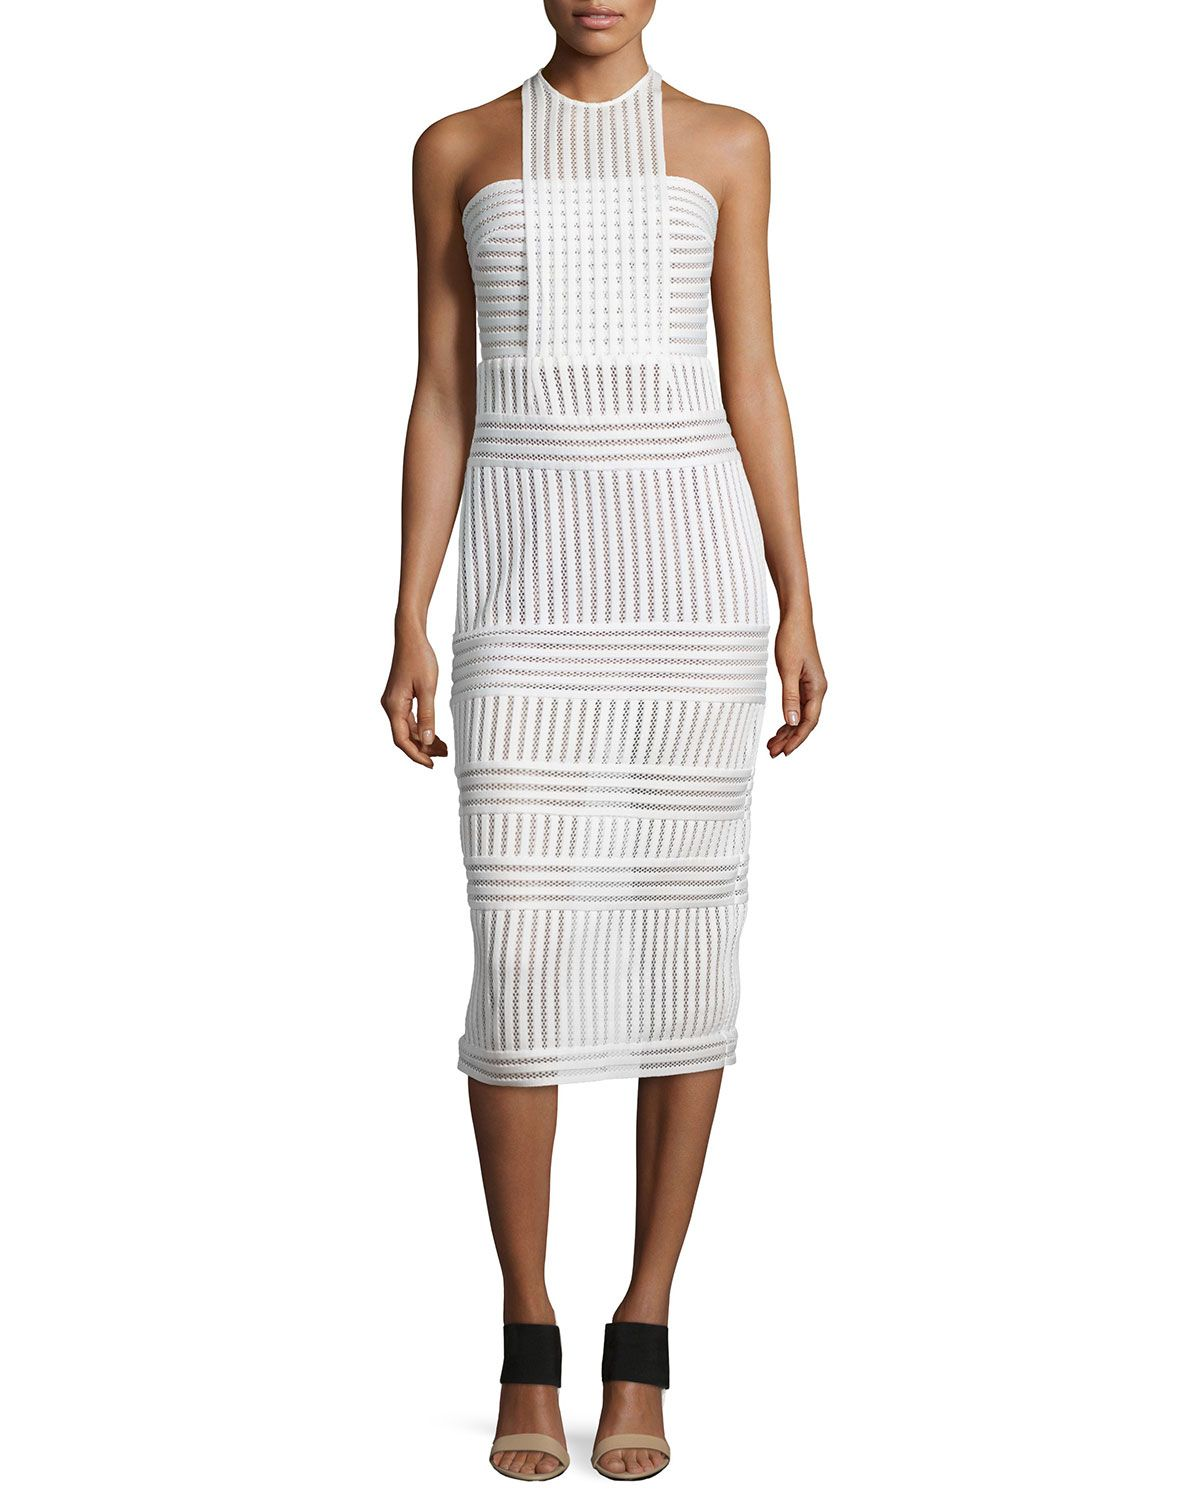 Mini white wedding dress  Striped MeshKnit Midi Sheath Dress White Size   Clothing